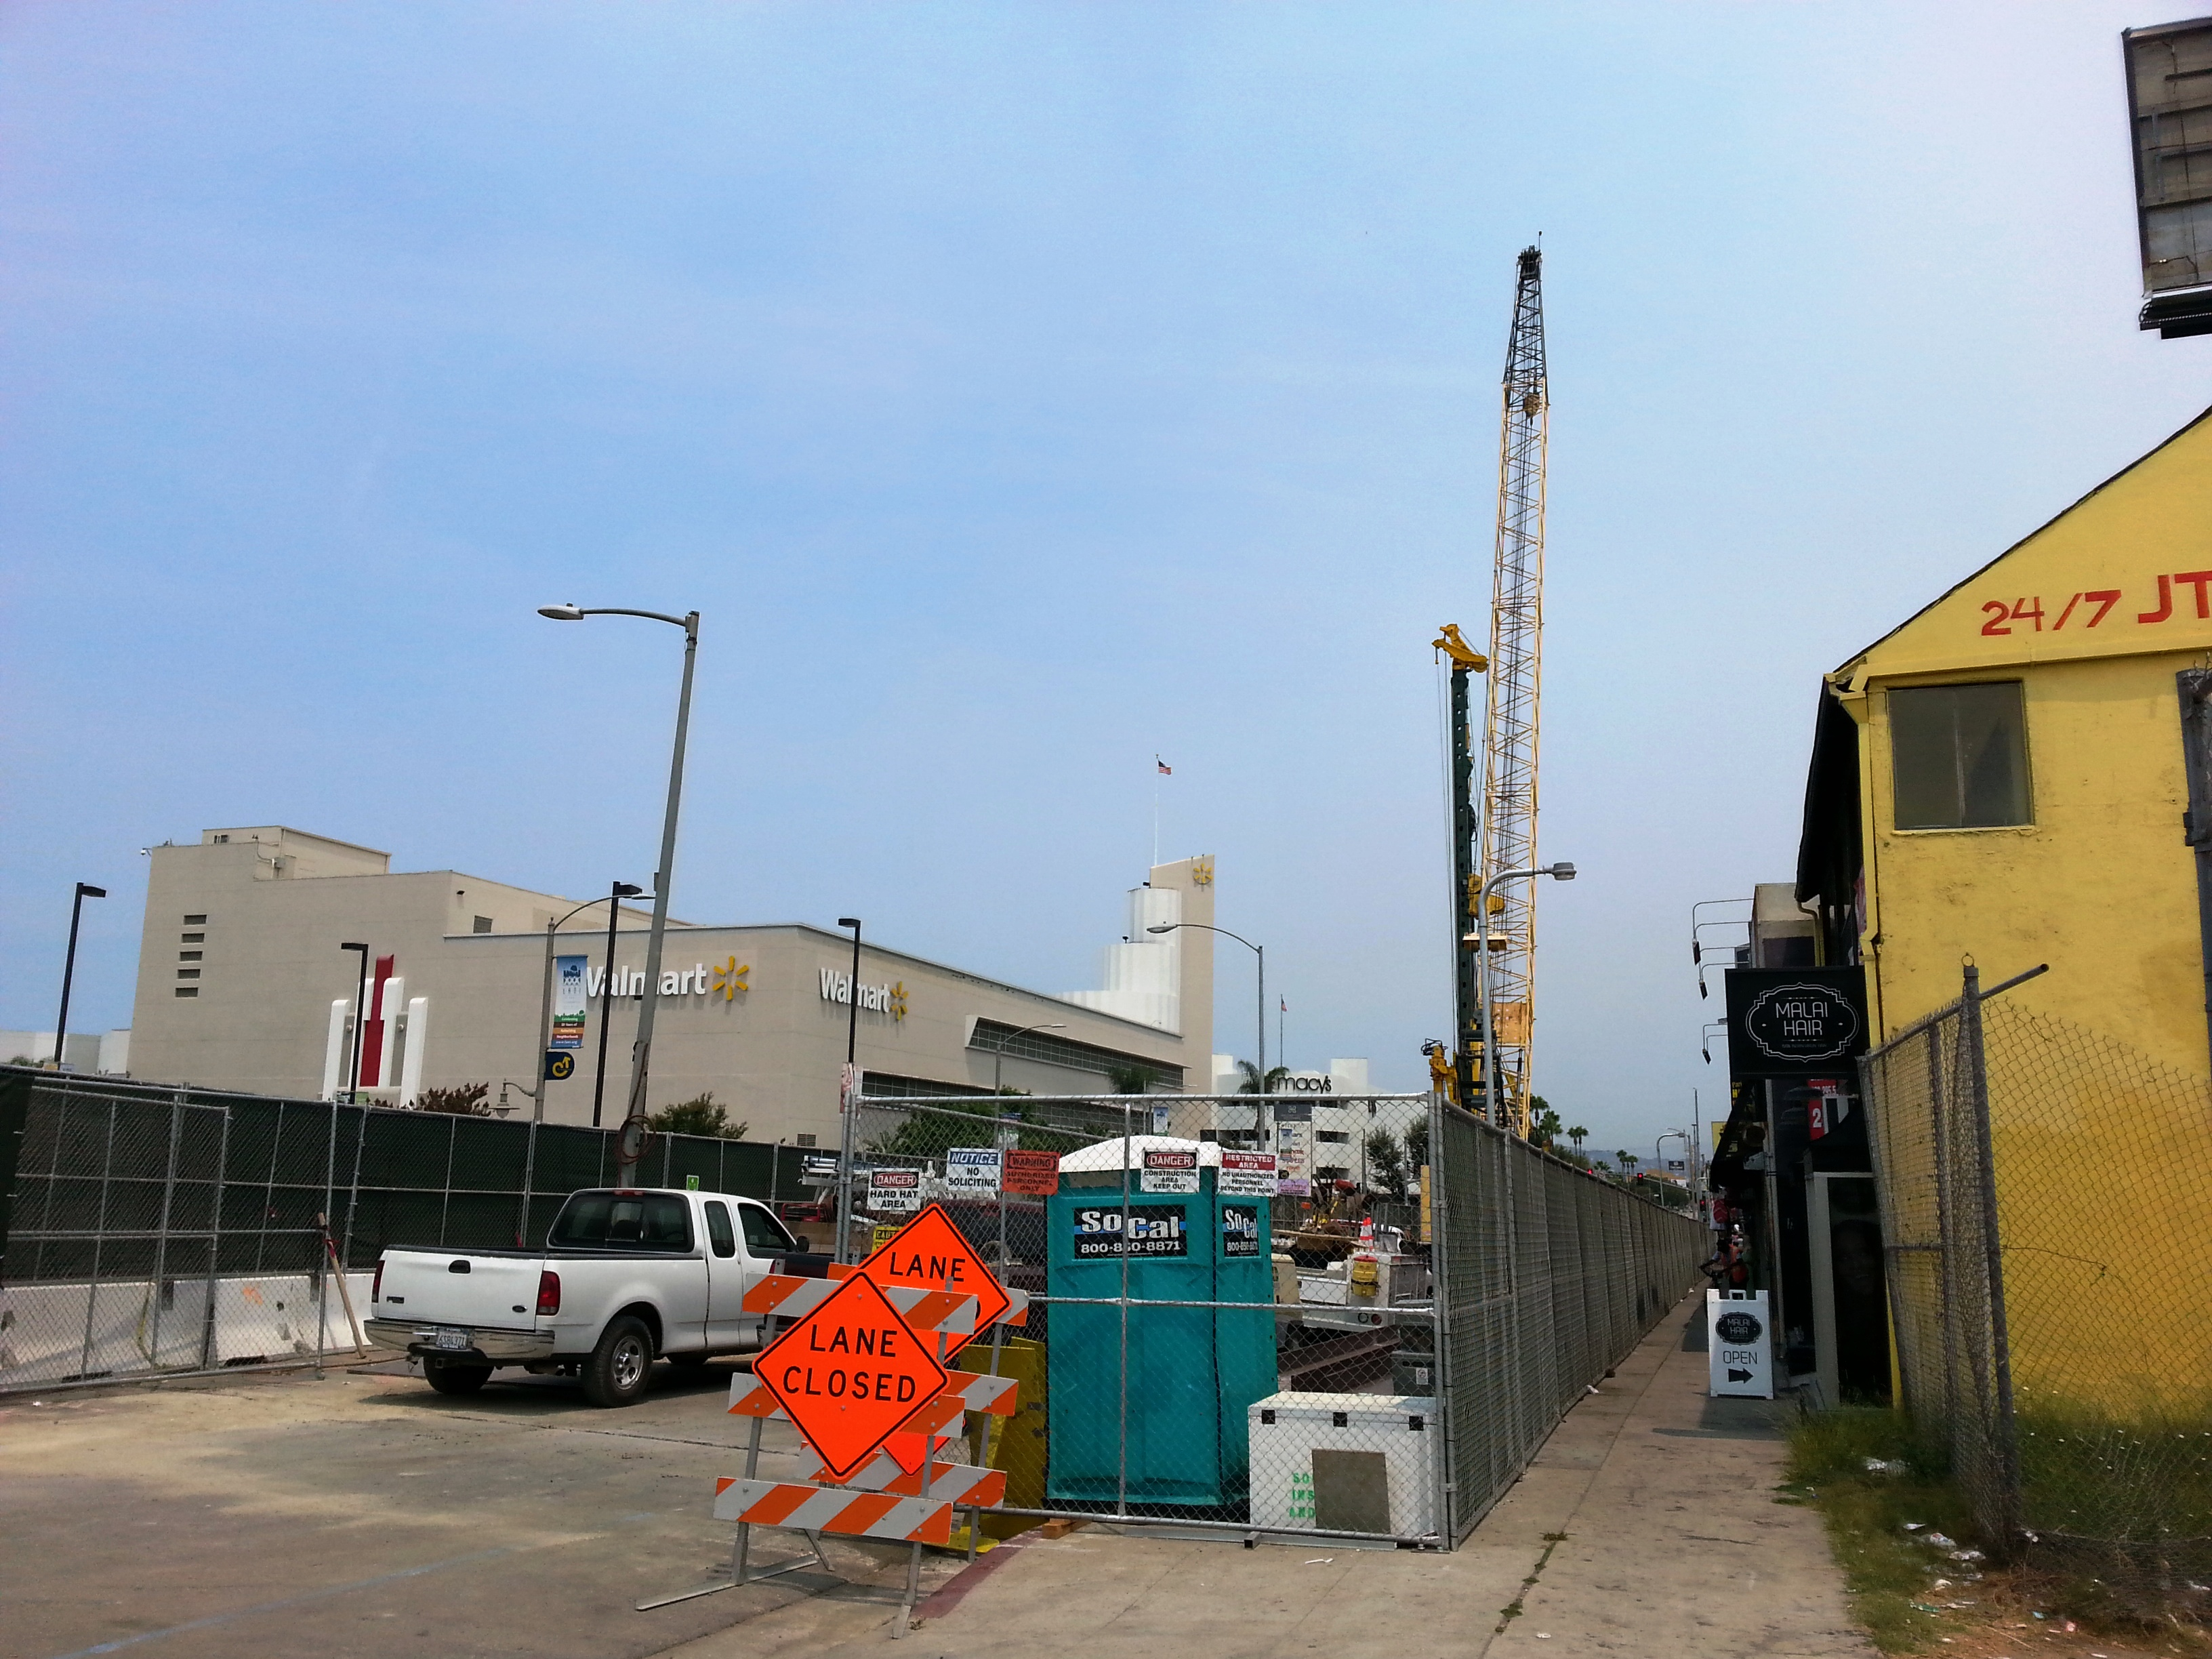 View of construction along Crenshaw Boulevard just north of Stocker Street. There is pedestrian access to businesses.